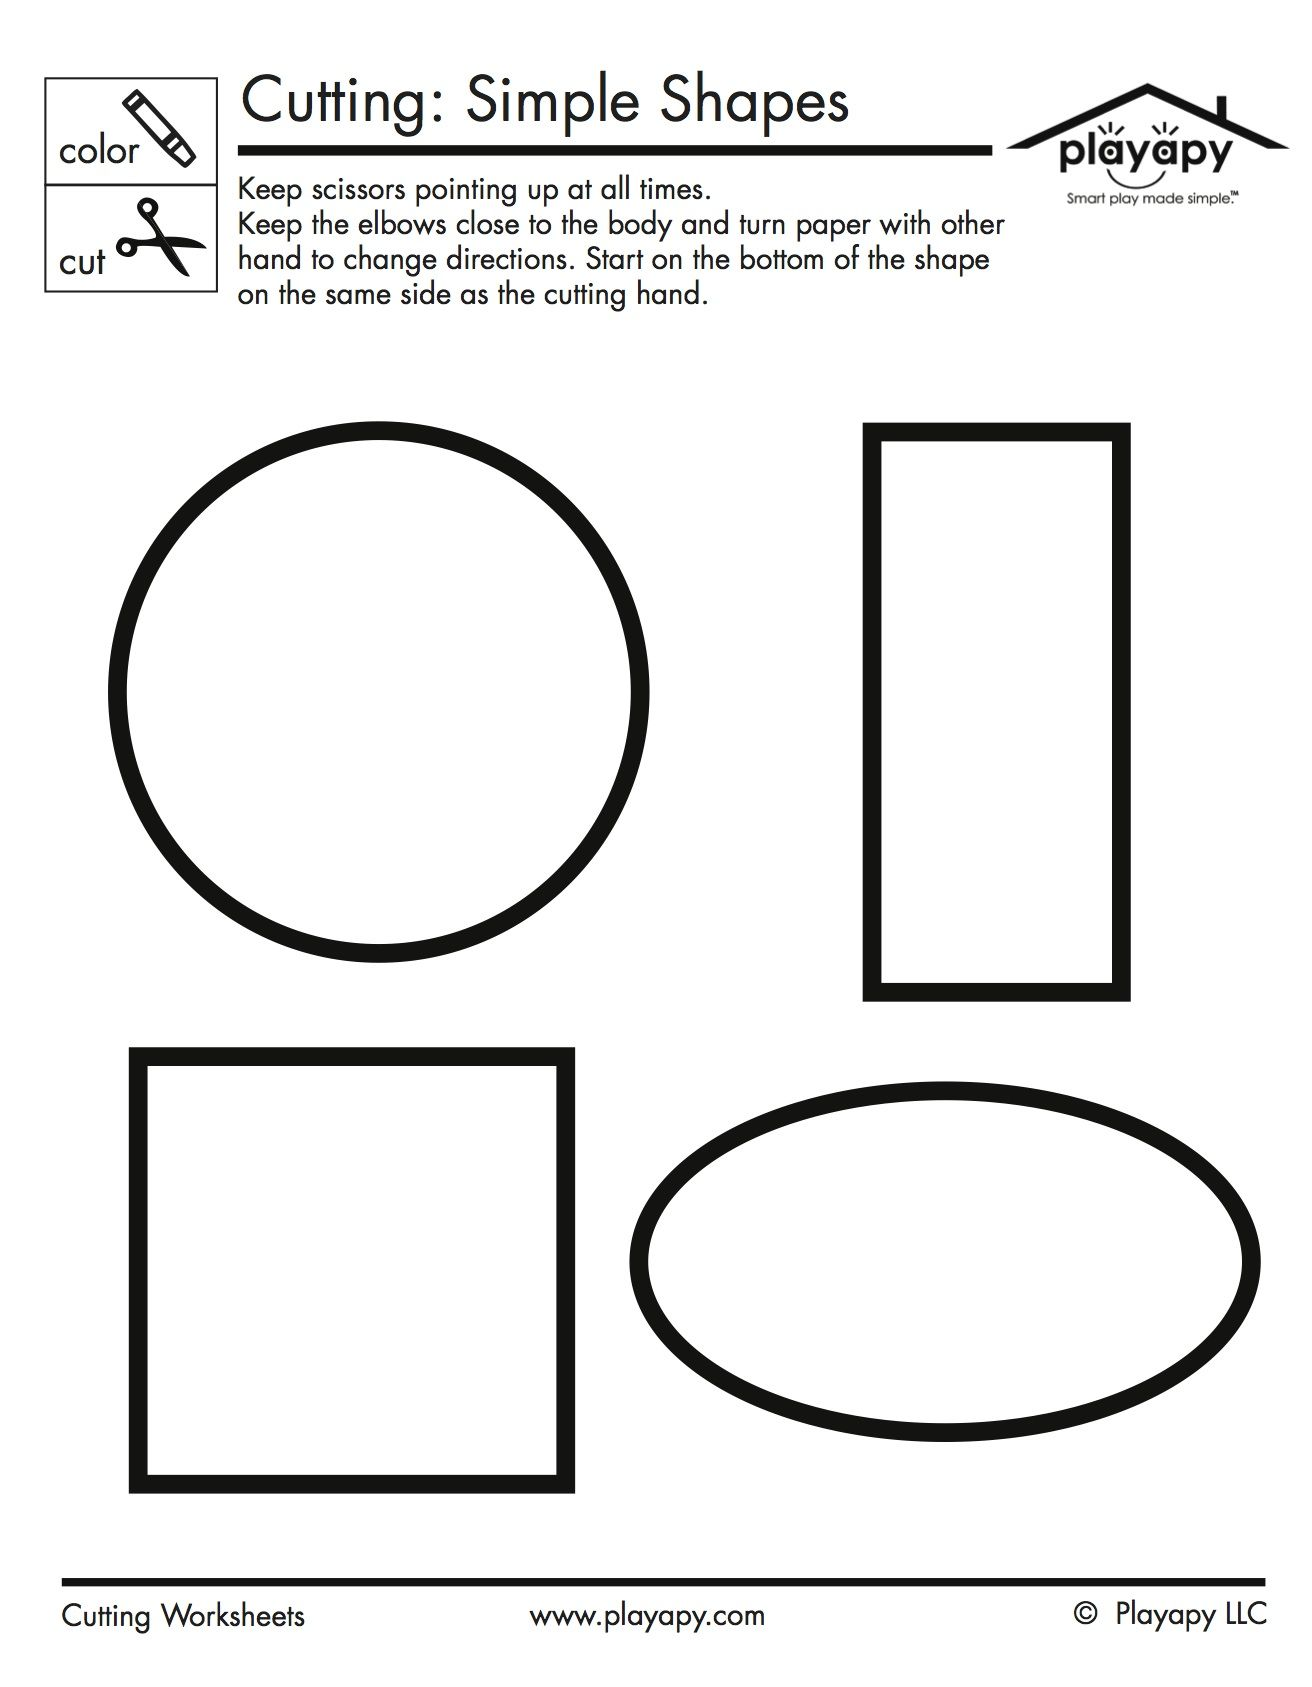 Pin On Playapy Printables